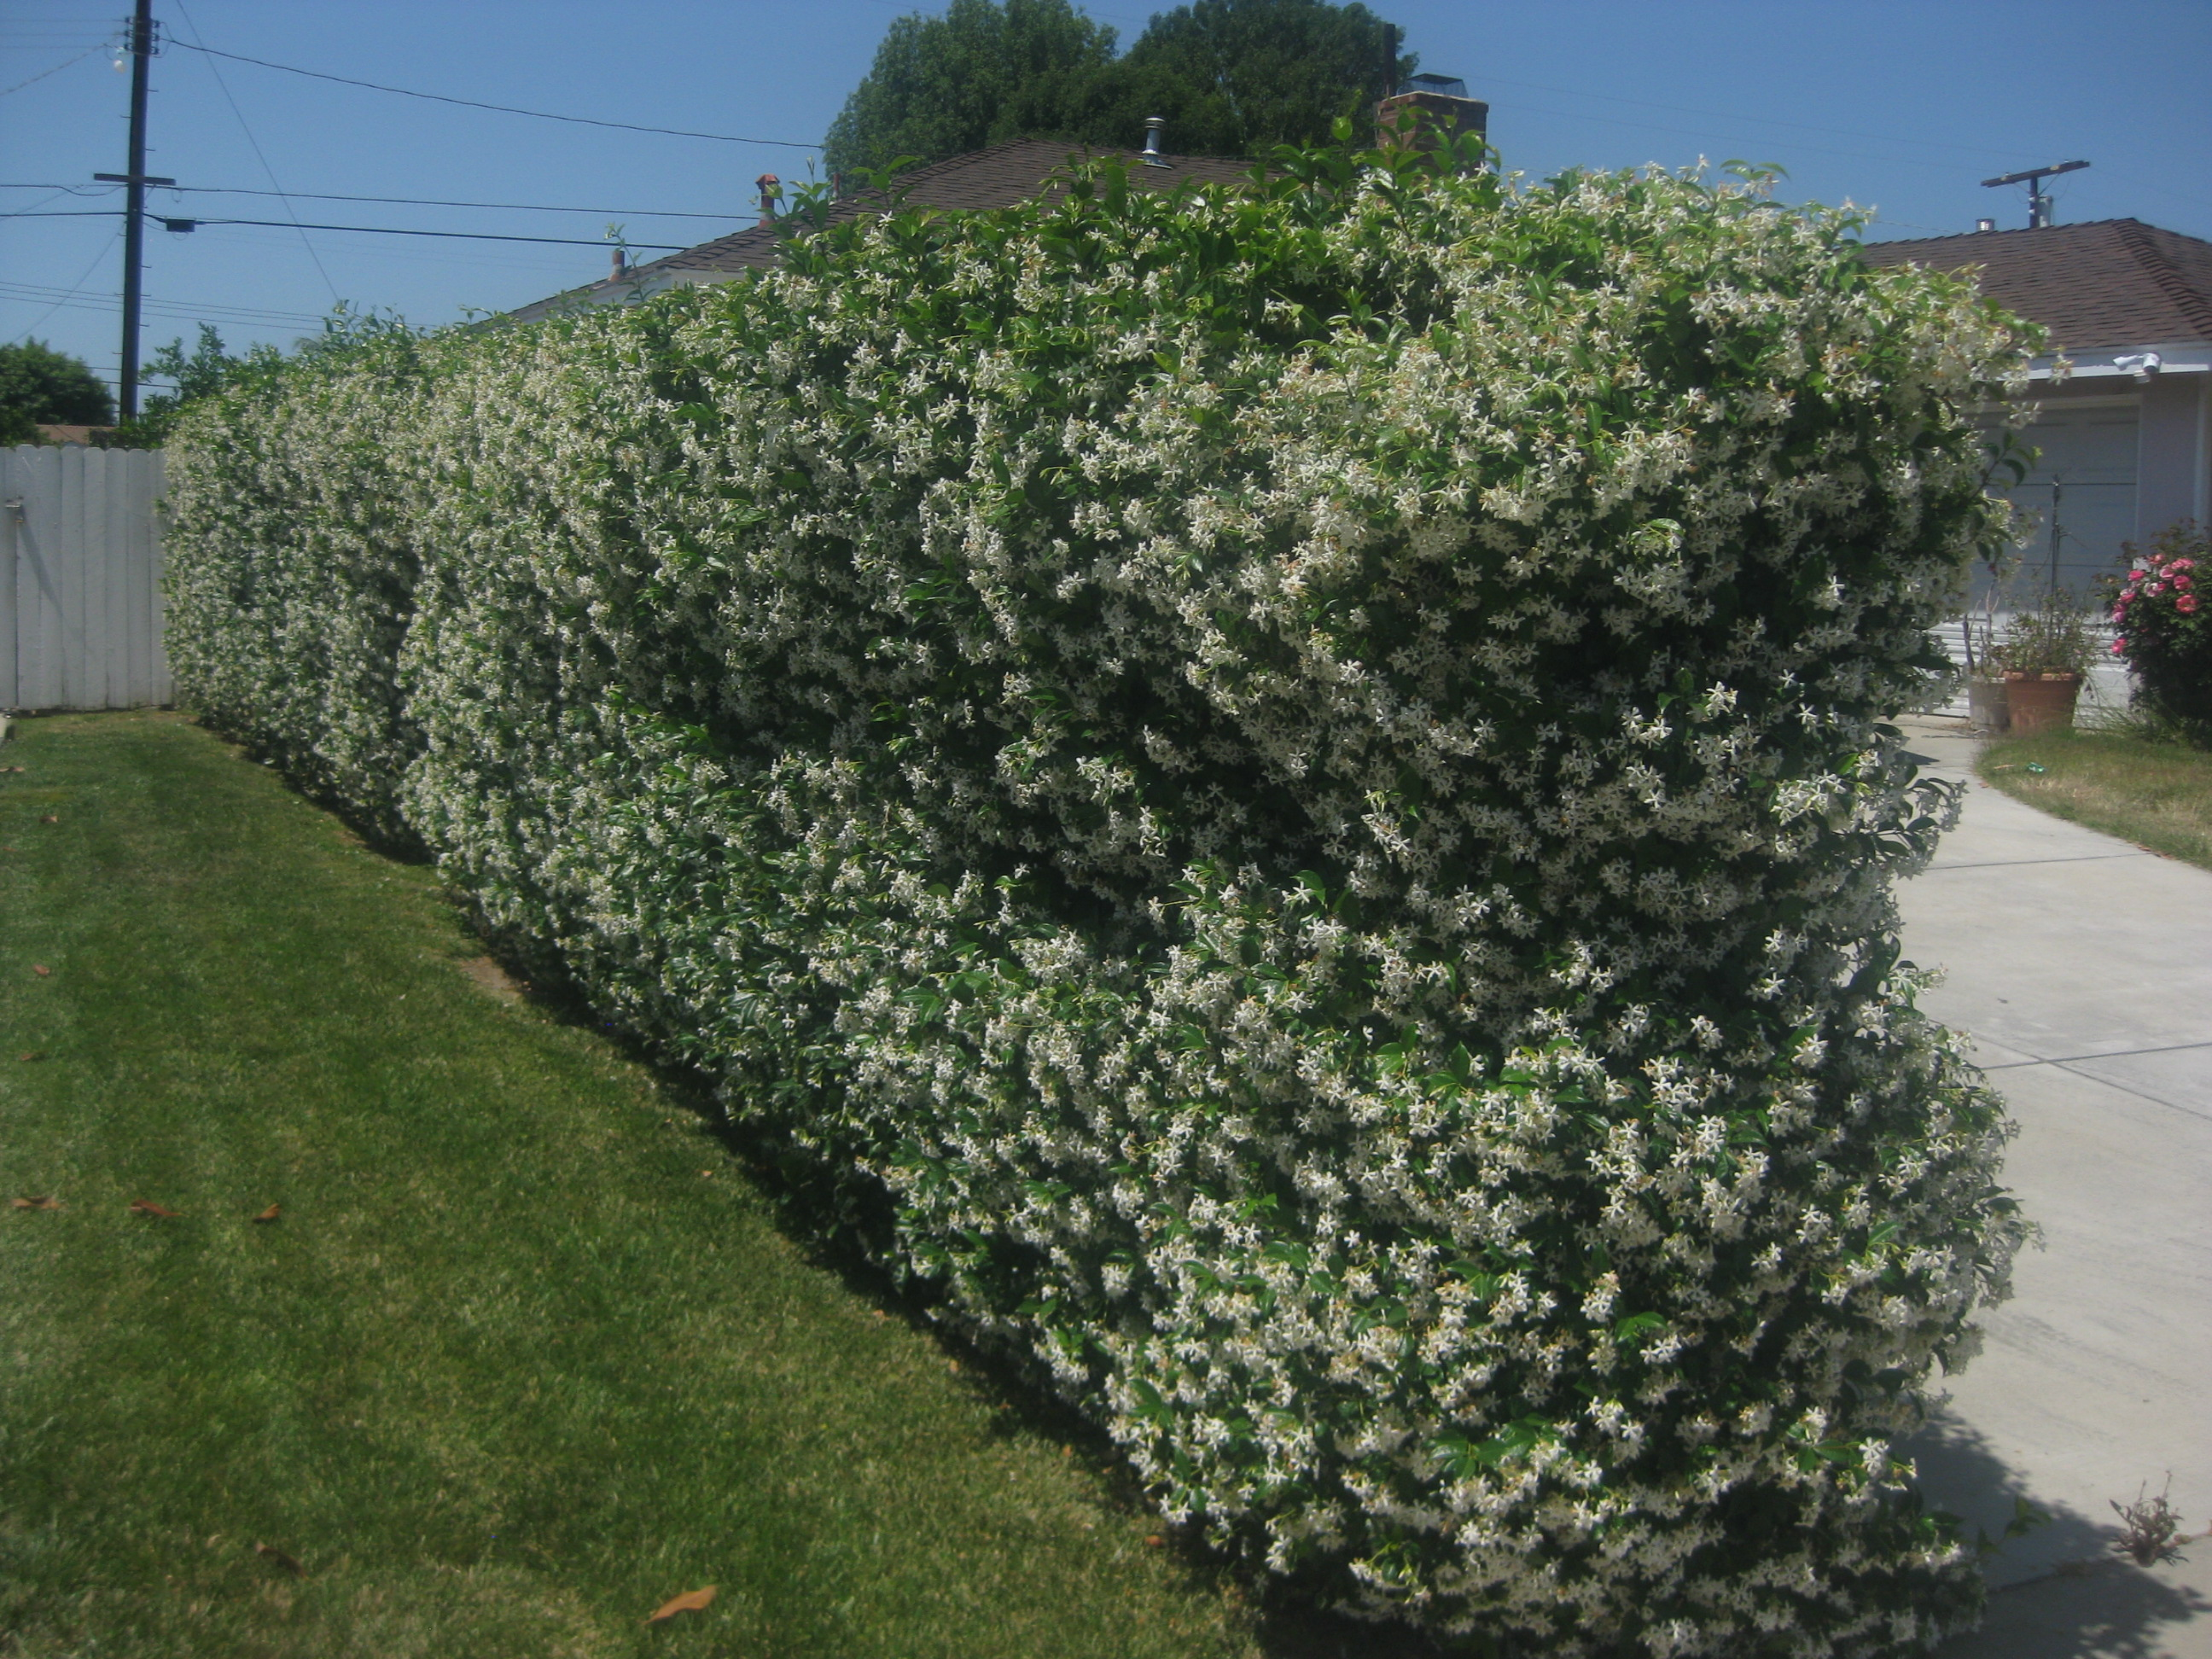 Star Jasmine Tracheloum Jasminoides Hedge Covers Chain Link Fence